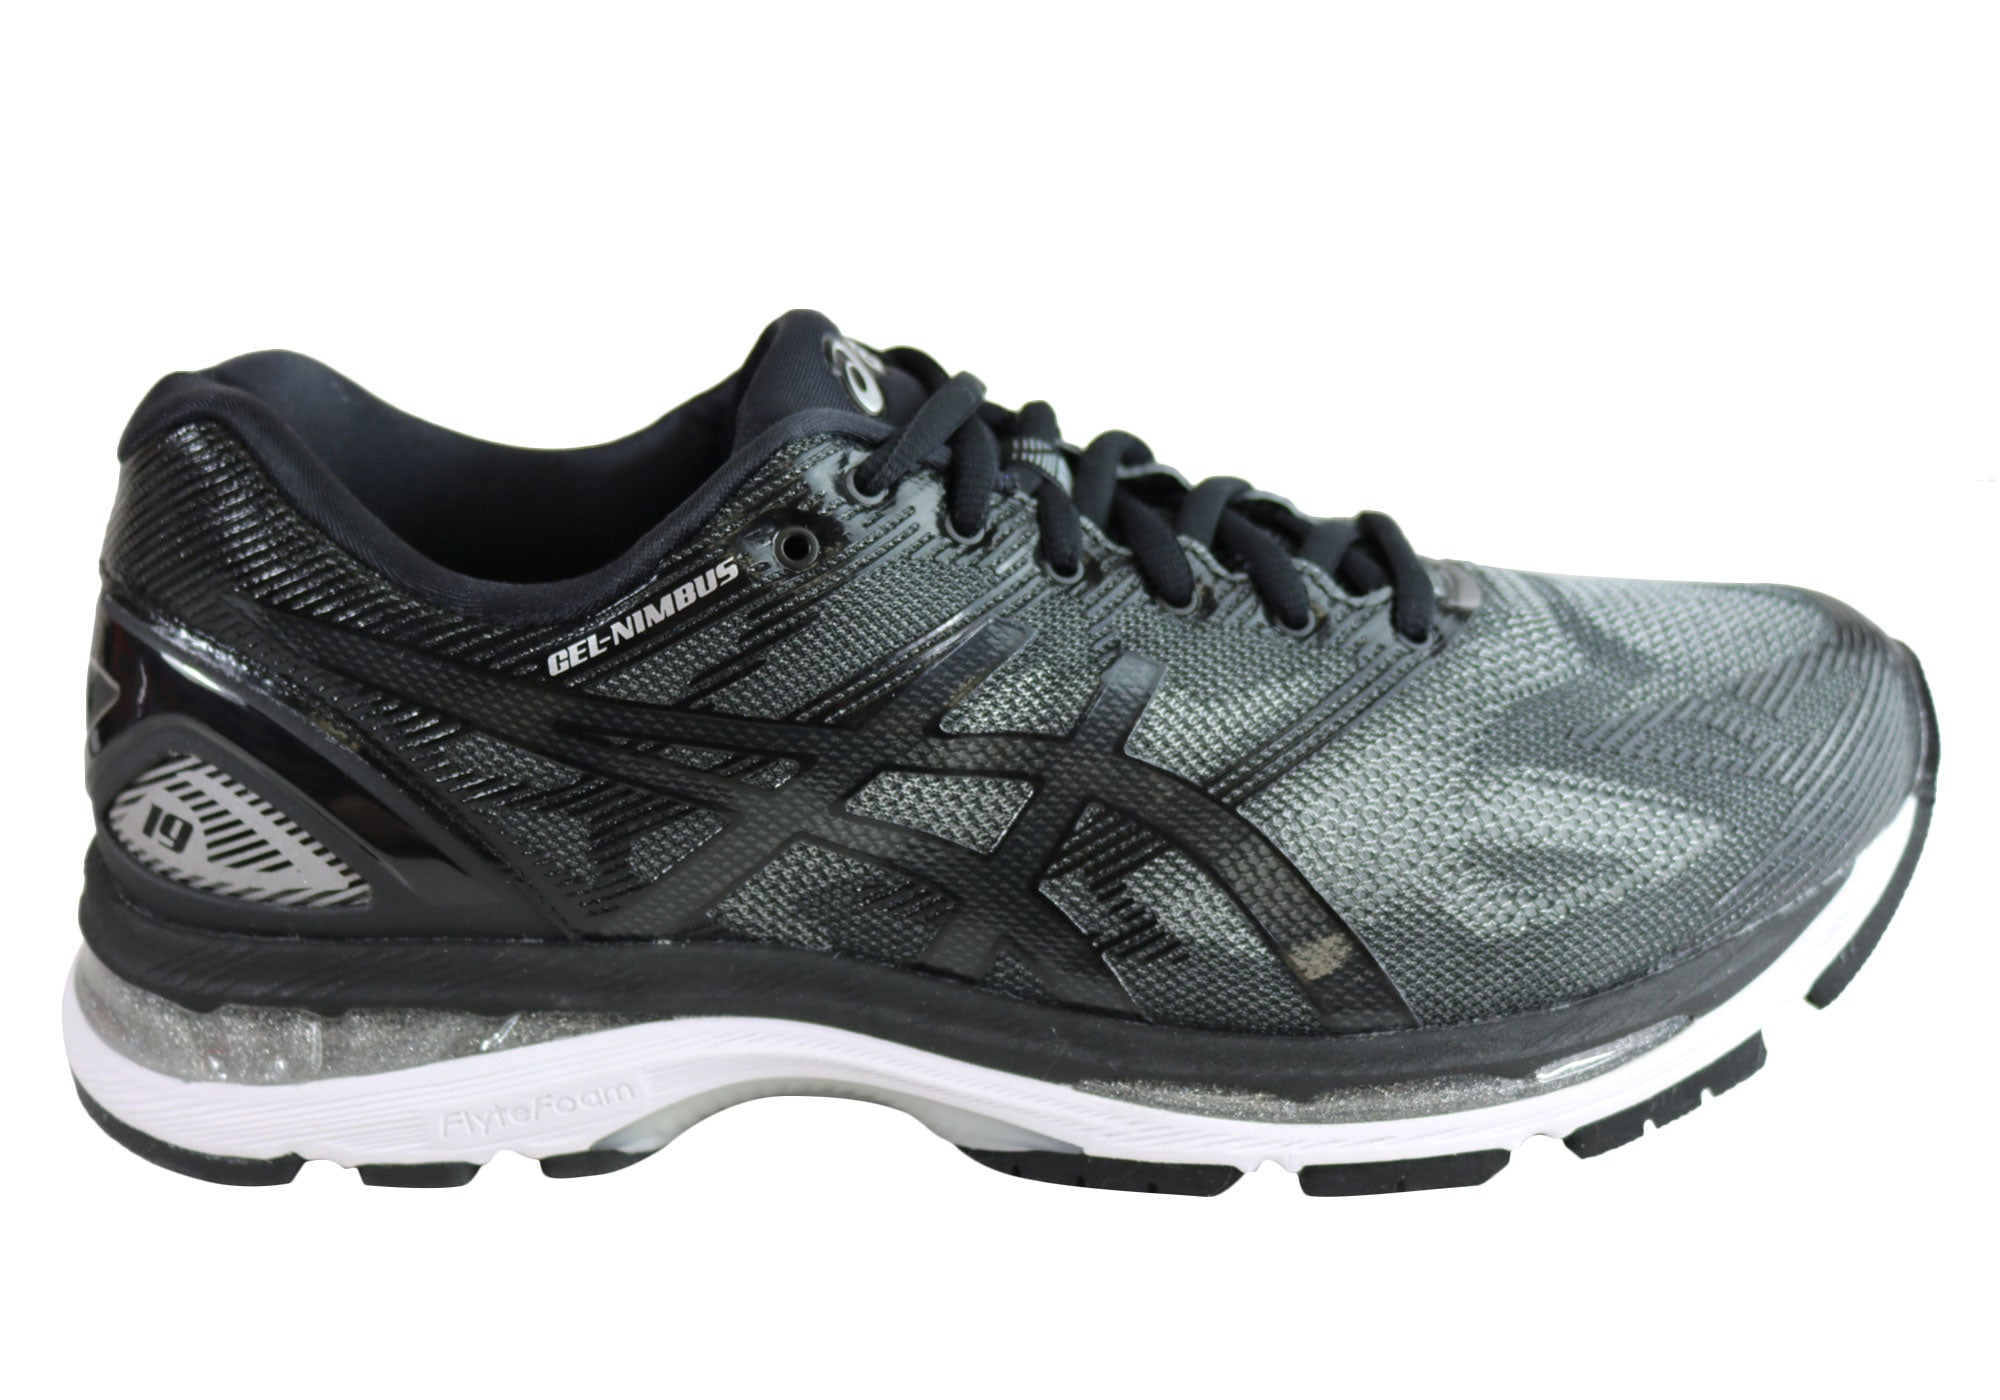 best sneakers 5530b 5be82 Asics Gel-Nimbus 19 (4E Width) Mens Premium Cushioned Running Shoes